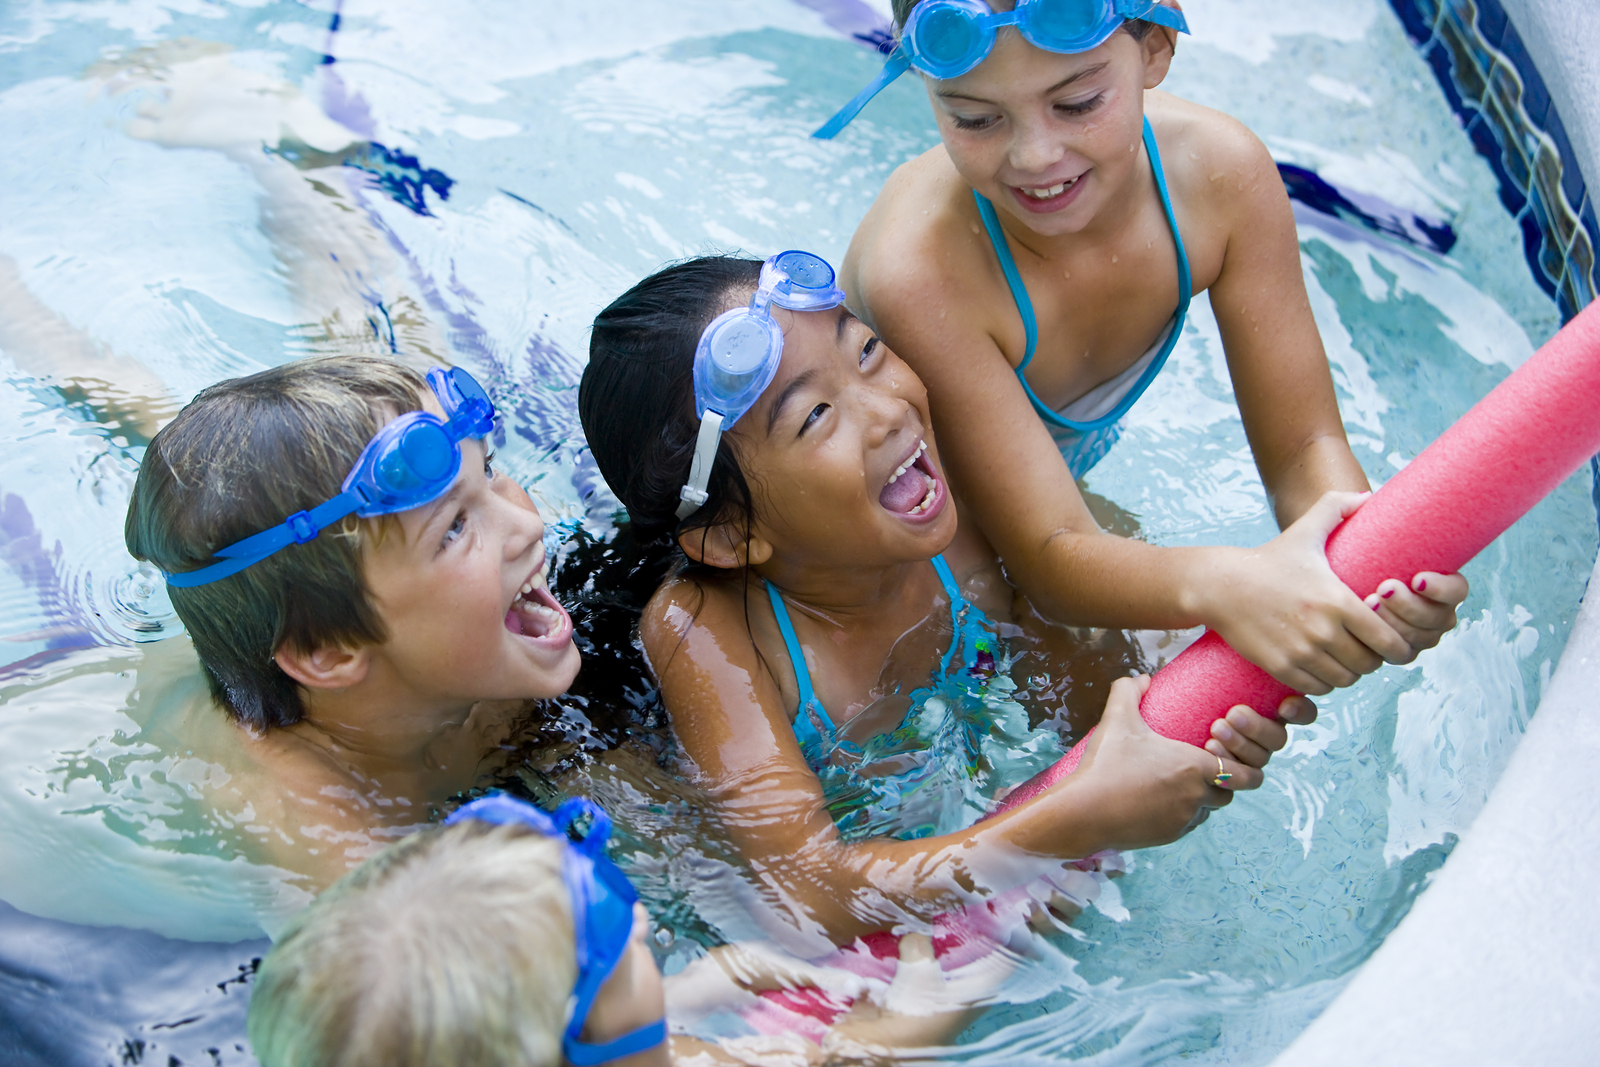 When it comes to water activities, it's important to keep some safety tips in mind.